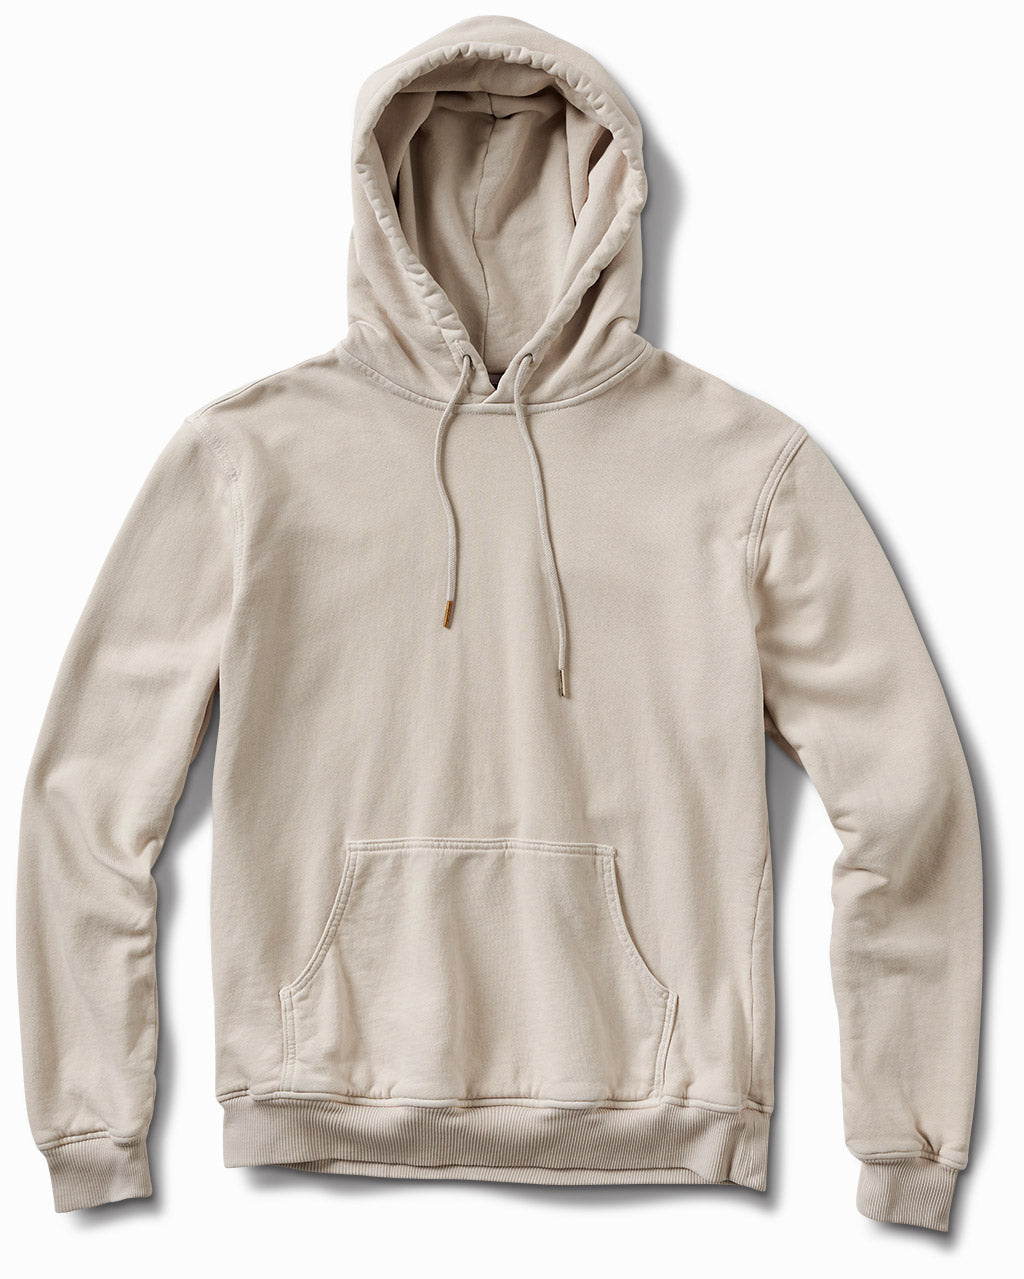 17oz French Terry Parchment Grey Distressed Hoodie